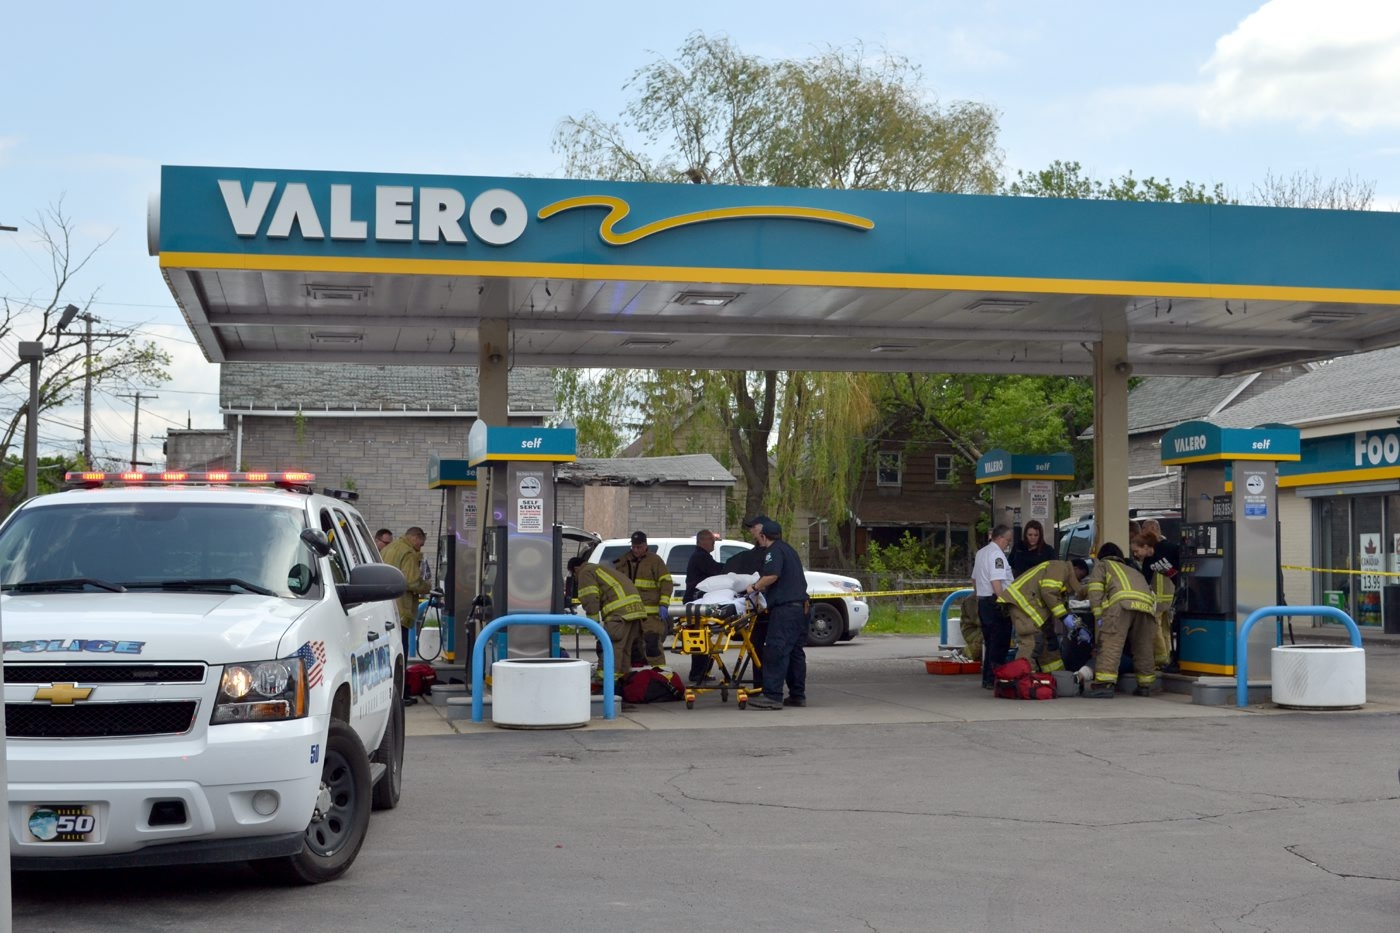 The Valero gas station, 19th Street and Ferry Avenue in Niagara Falls, was the scene of a shooting that injured three people on Saturday.